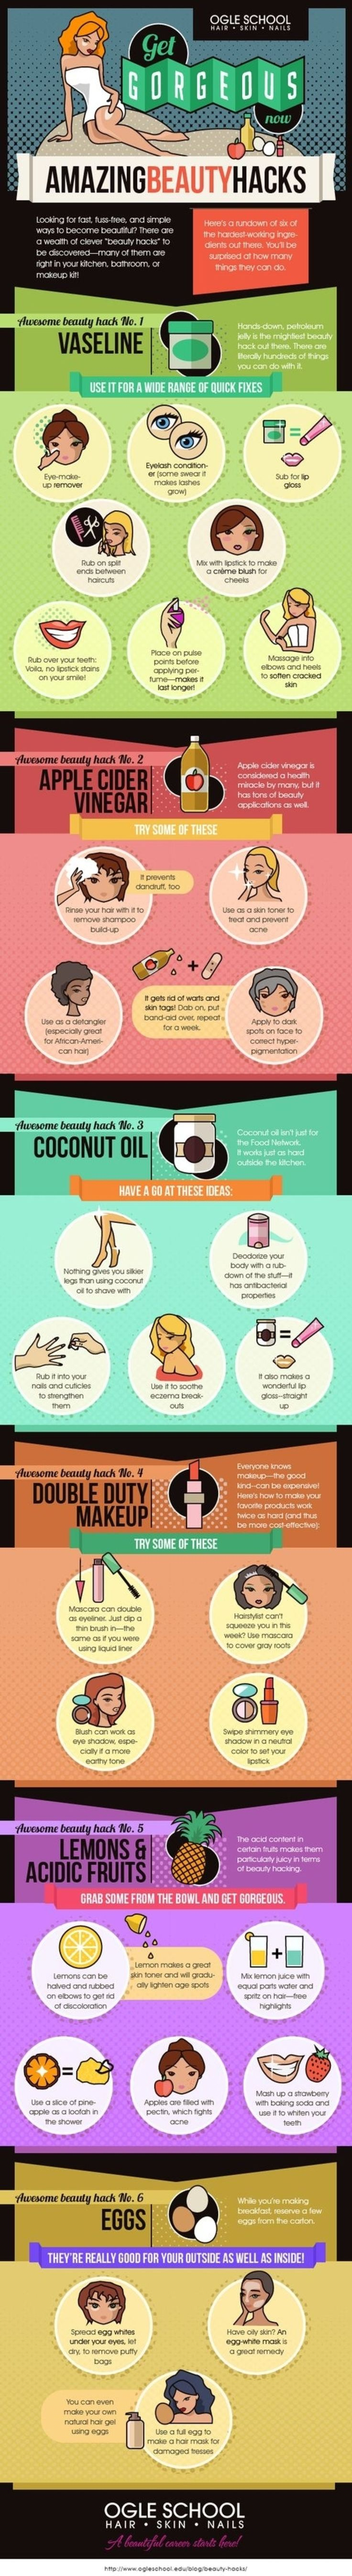 best face face images on pinterest beauty tips beauty